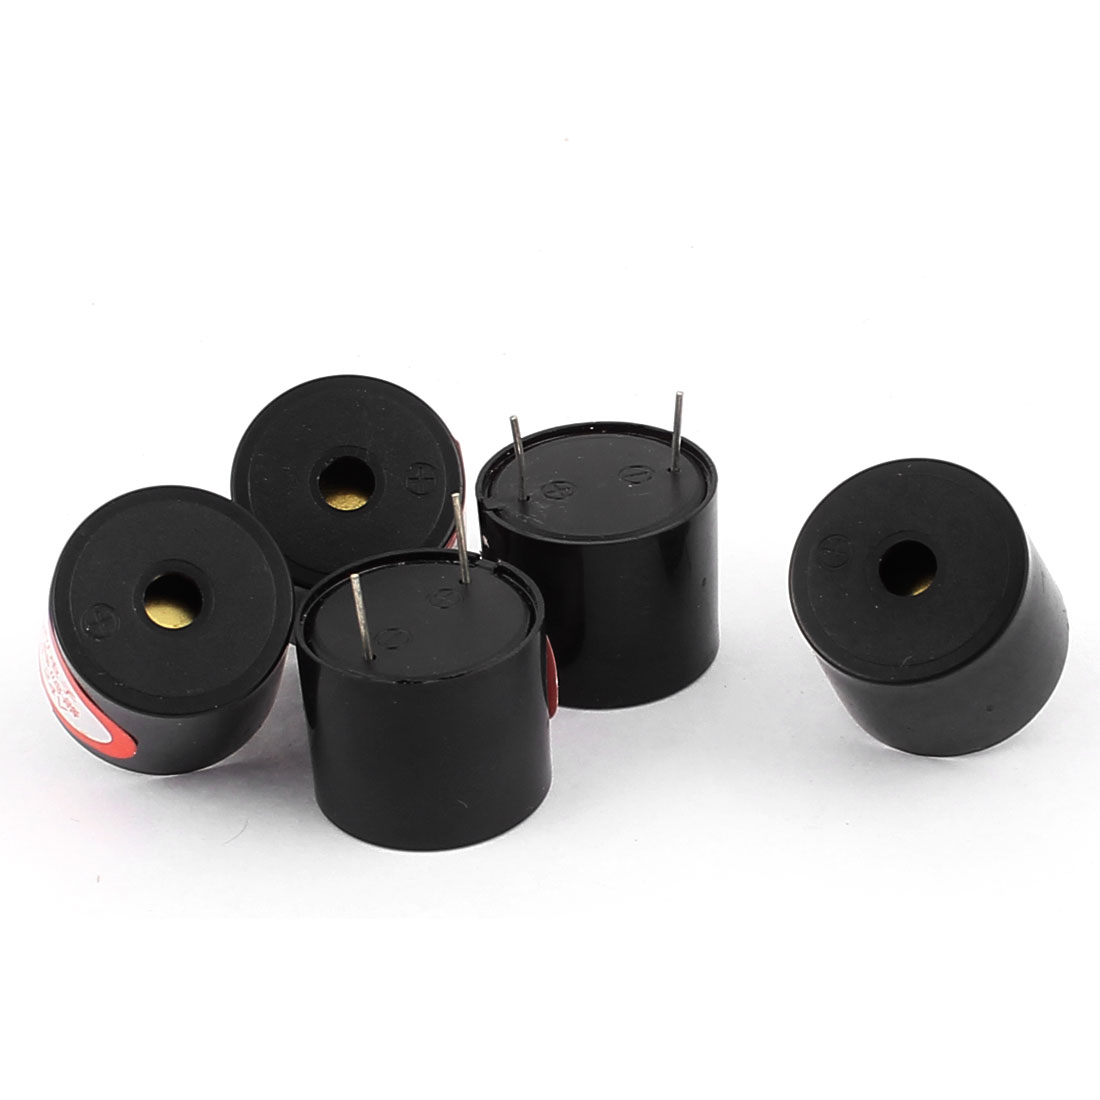 DC 3-24V Industrial Electronic 2 Terminals Cylinder Continuous Sound Buzzer 5Pcs